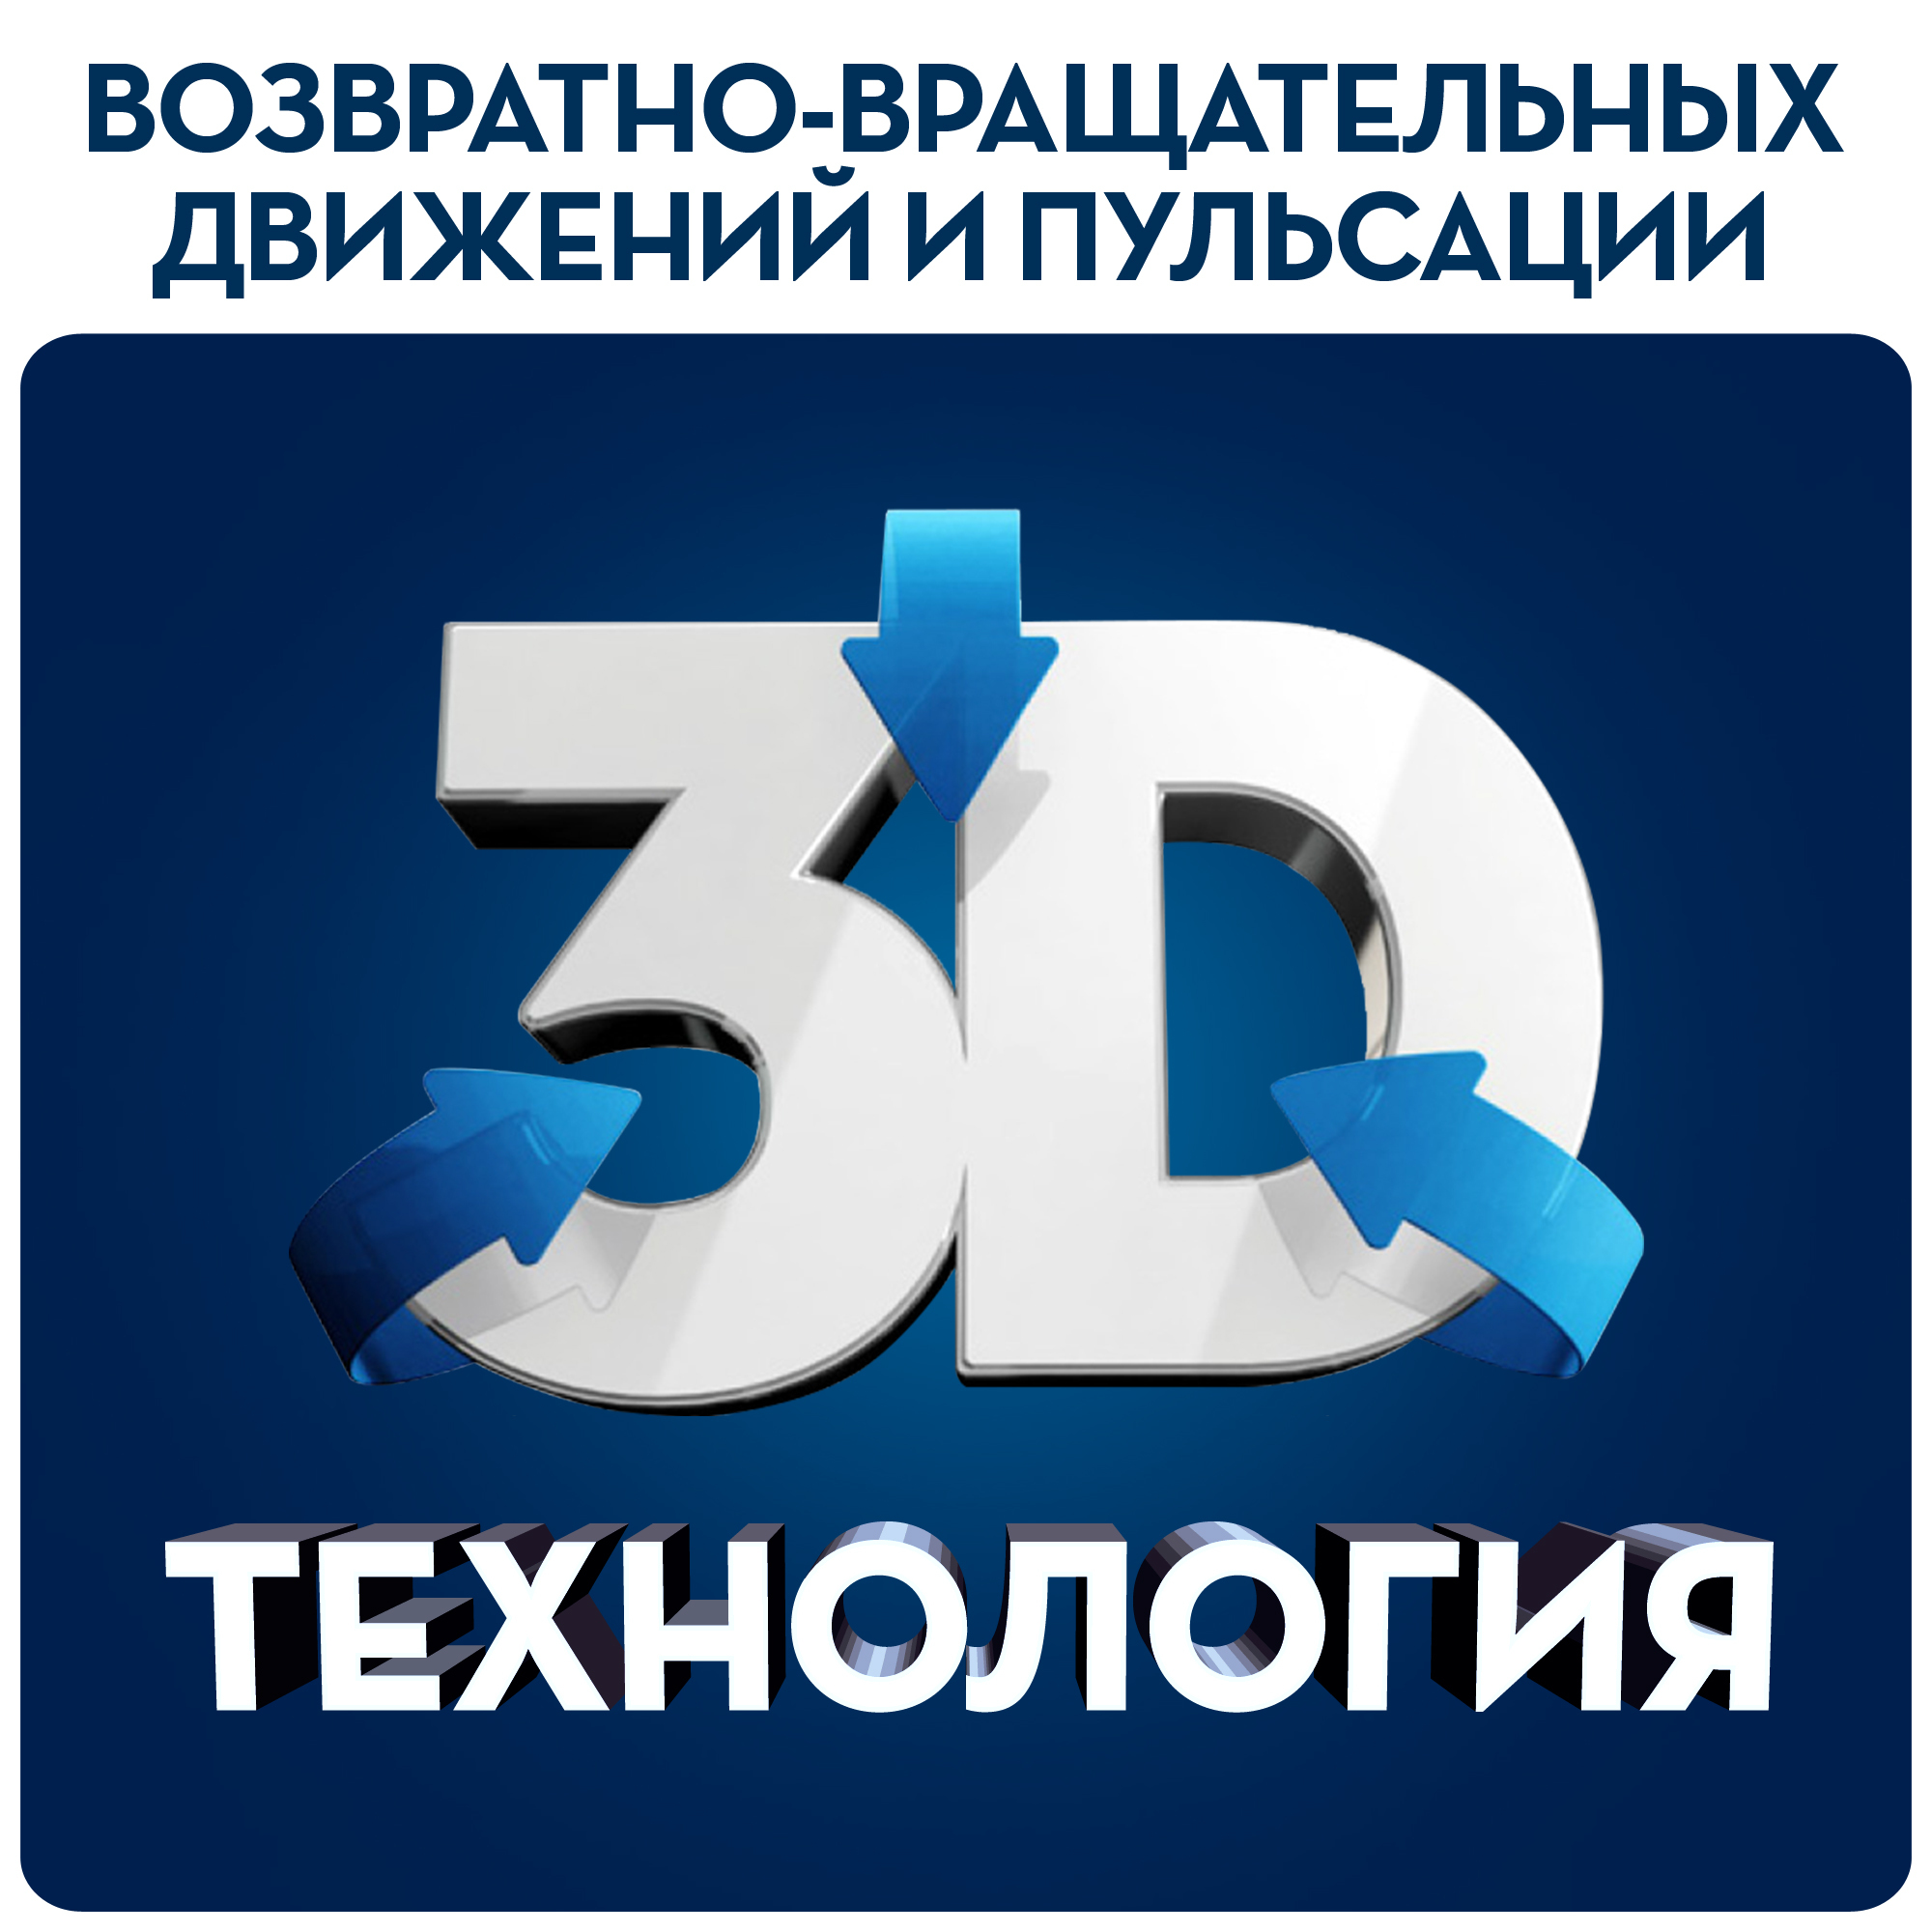 https://doctorslon.ru/images/3D%D1%82%D0%B5%D1%85%D0%BD%D0%BE%D0%BB%D0%BE%D0%B3%D0%B8%D1%8F.jpg